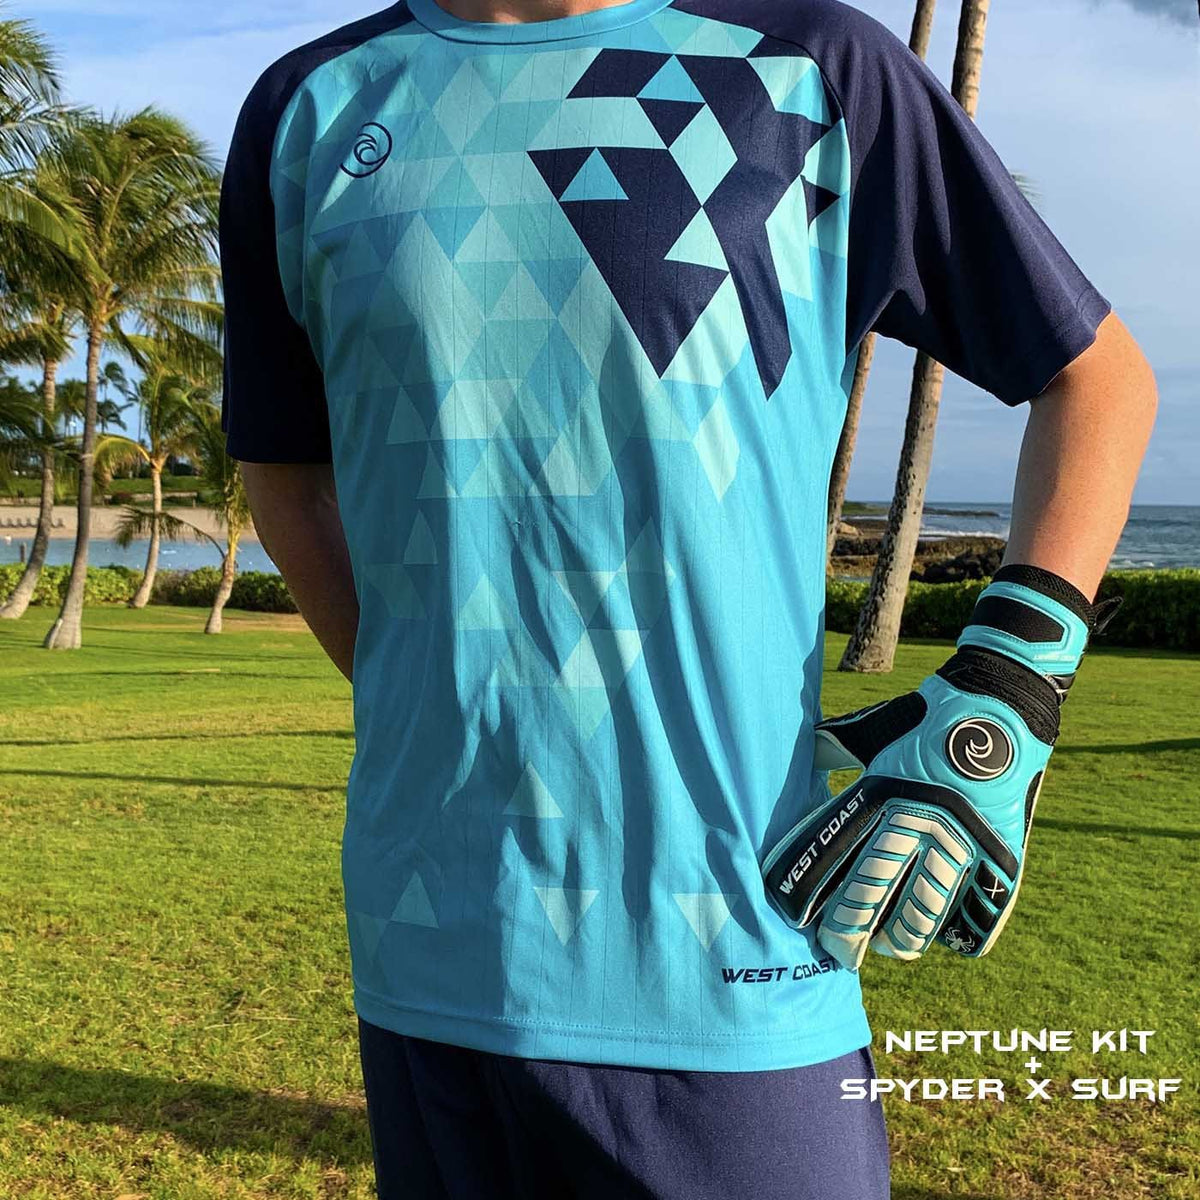 Neptune Goalkeeper Kit - West Coast Goalkeeping